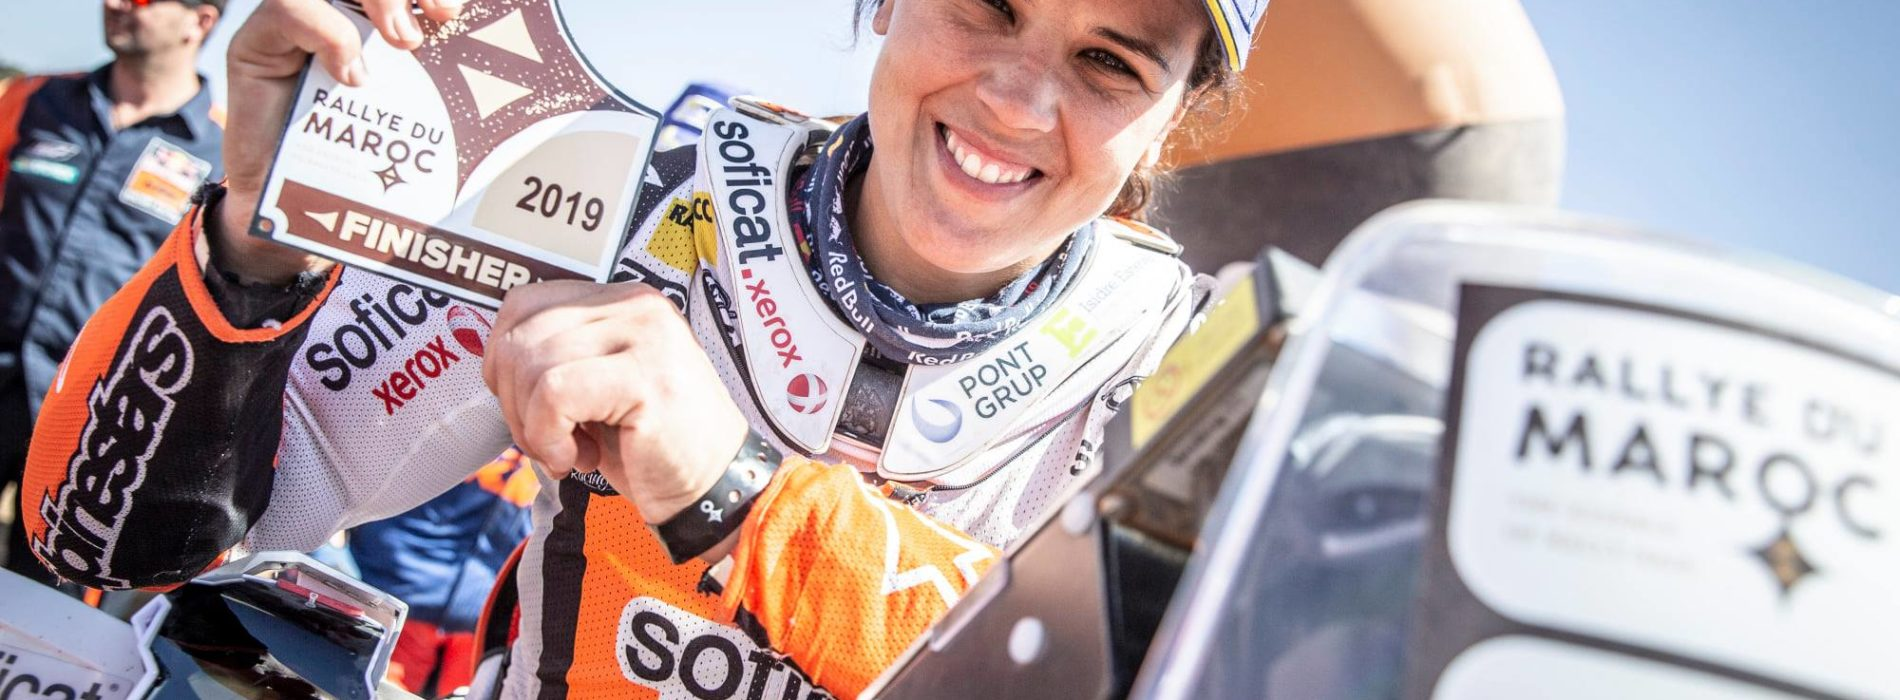 Laia Sanz wins 2019 FIM Women's Cross-Country Rallies World Championship and places 18th Overall at Rally of Morocco